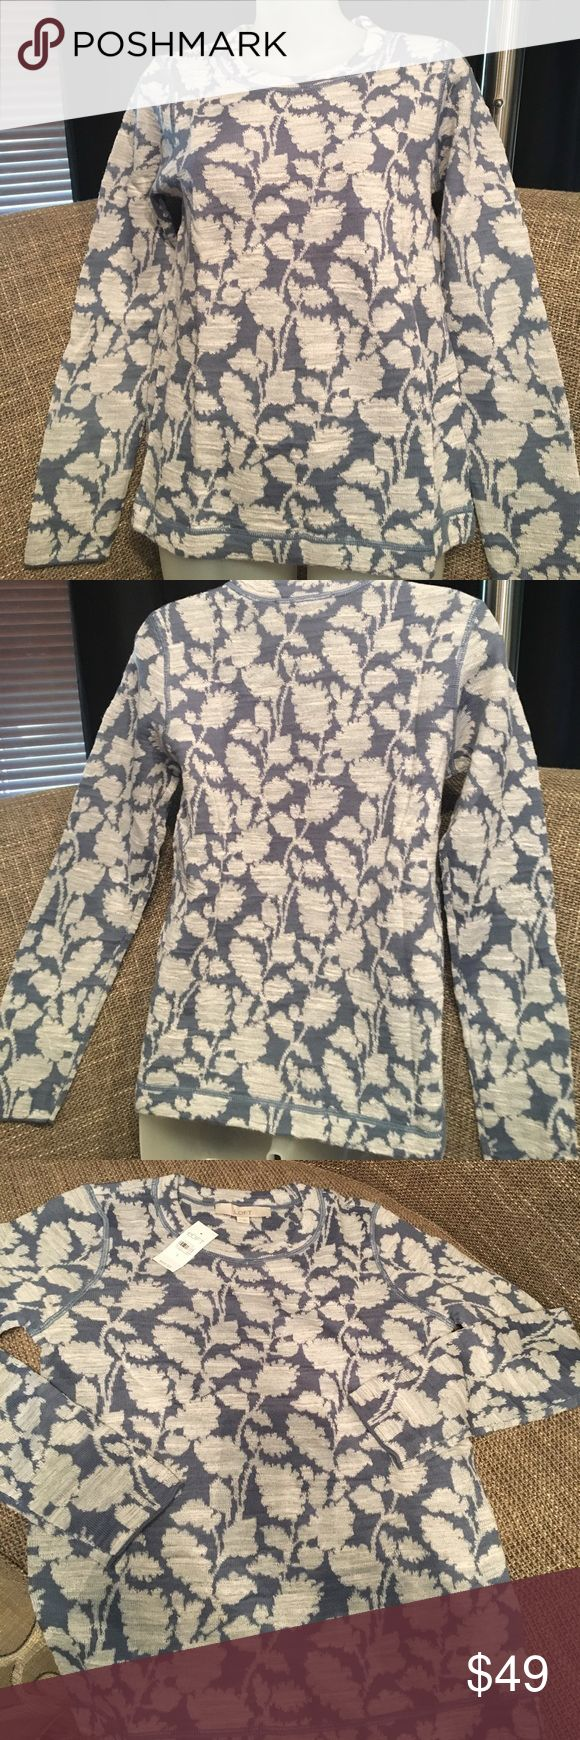 """NWT Loft sweater NWT Loft sweater. Lightweight. Shoulder to hem 24"""". Just took out of plastic and never tried on.        Proceeds of this sale goes to local homeless shelter LOFT Sweaters Crew & Scoop Necks"""